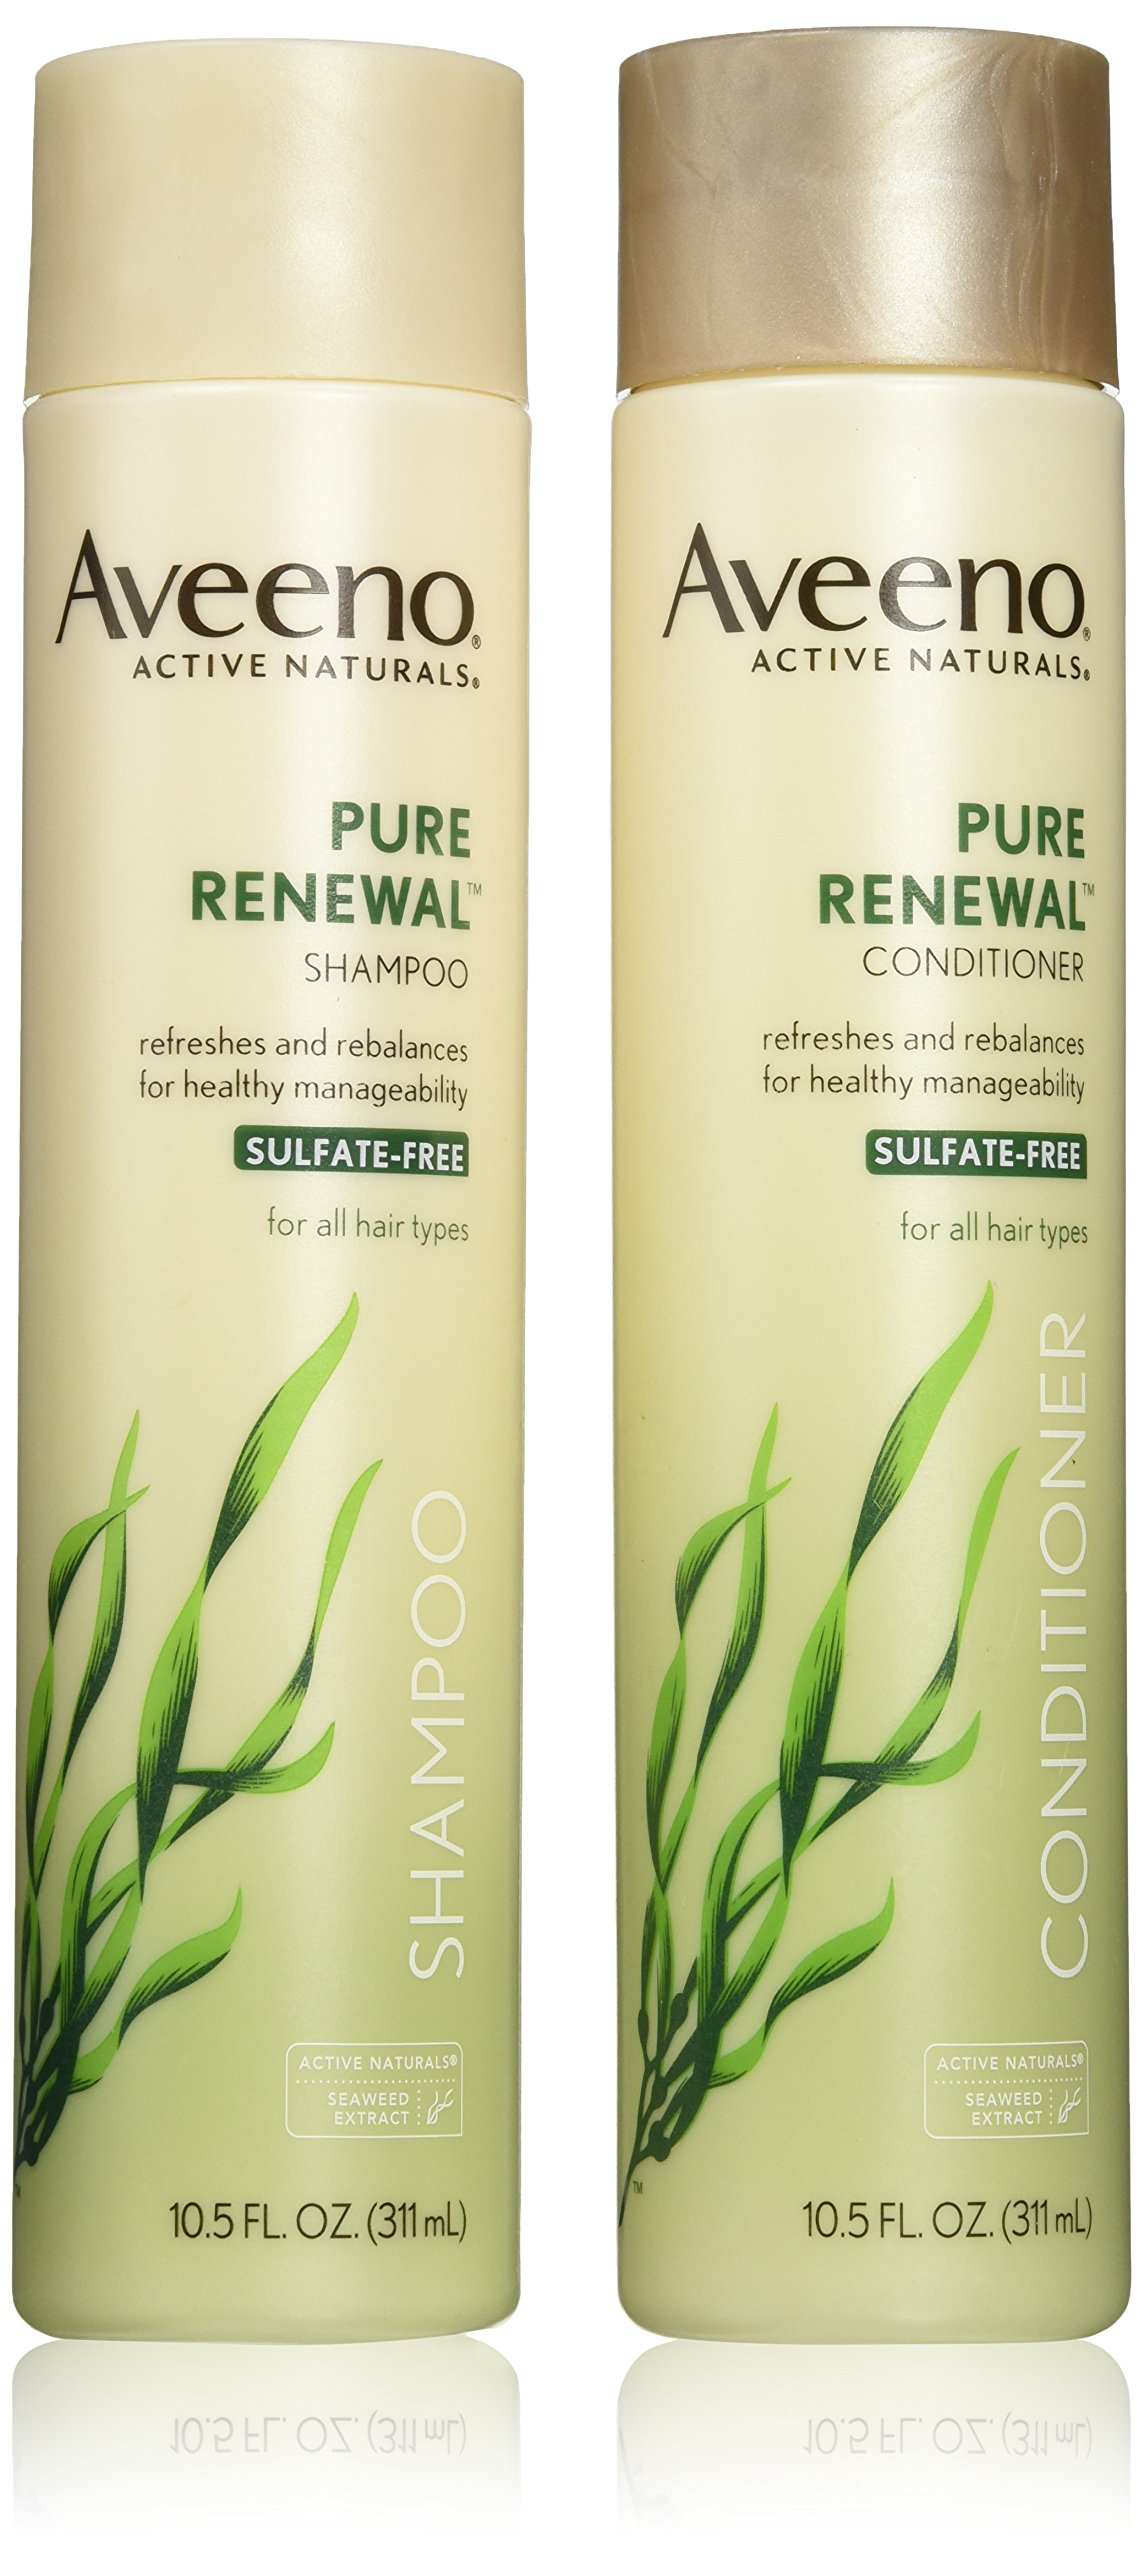 Aveeno Active Naturals Pure Renewal Shampoo and Conditioner Set, 10.5 Fluid Ounce each by Aveeno